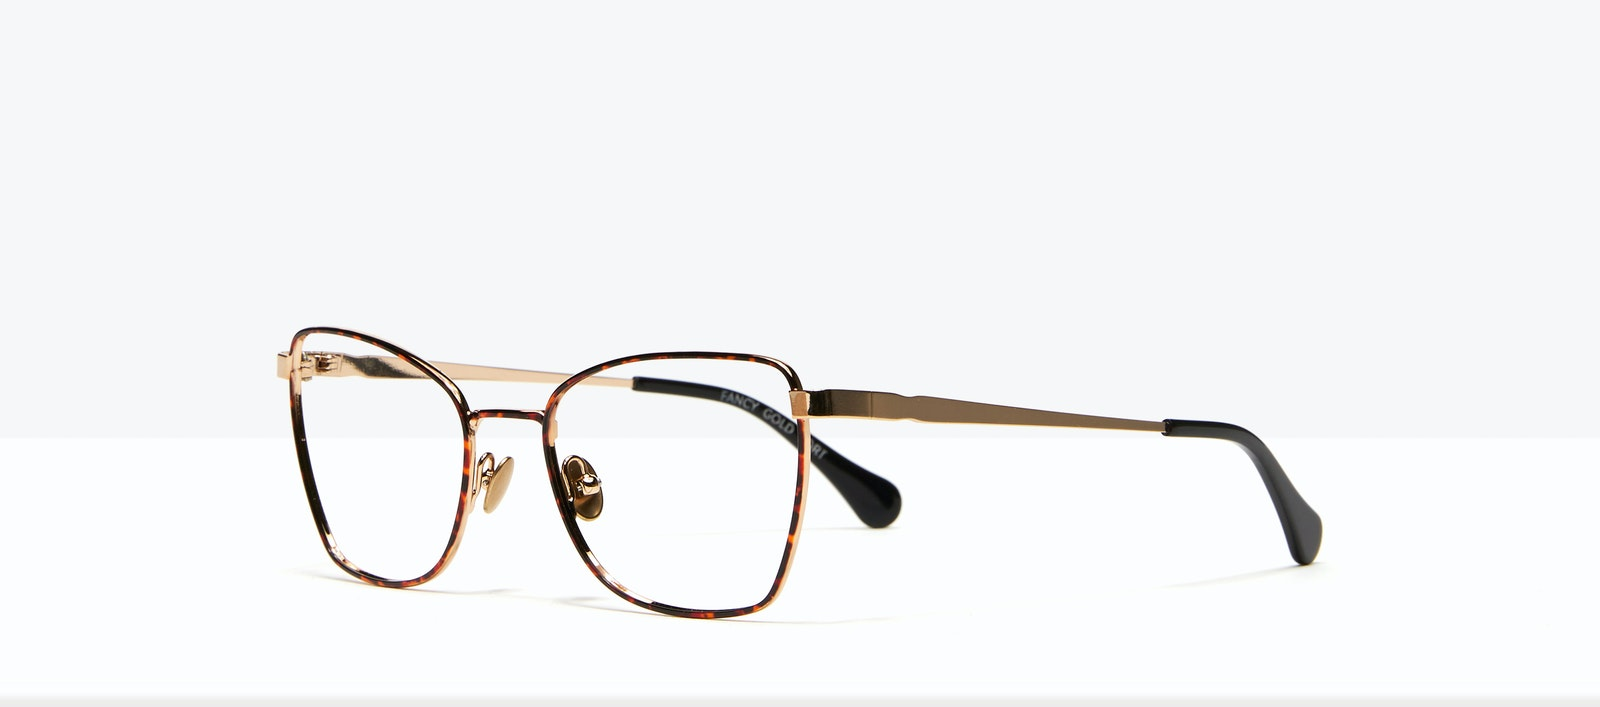 Affordable Fashion Glasses Cat Eye Eyeglasses Women Fancy Gold Tort Tilt